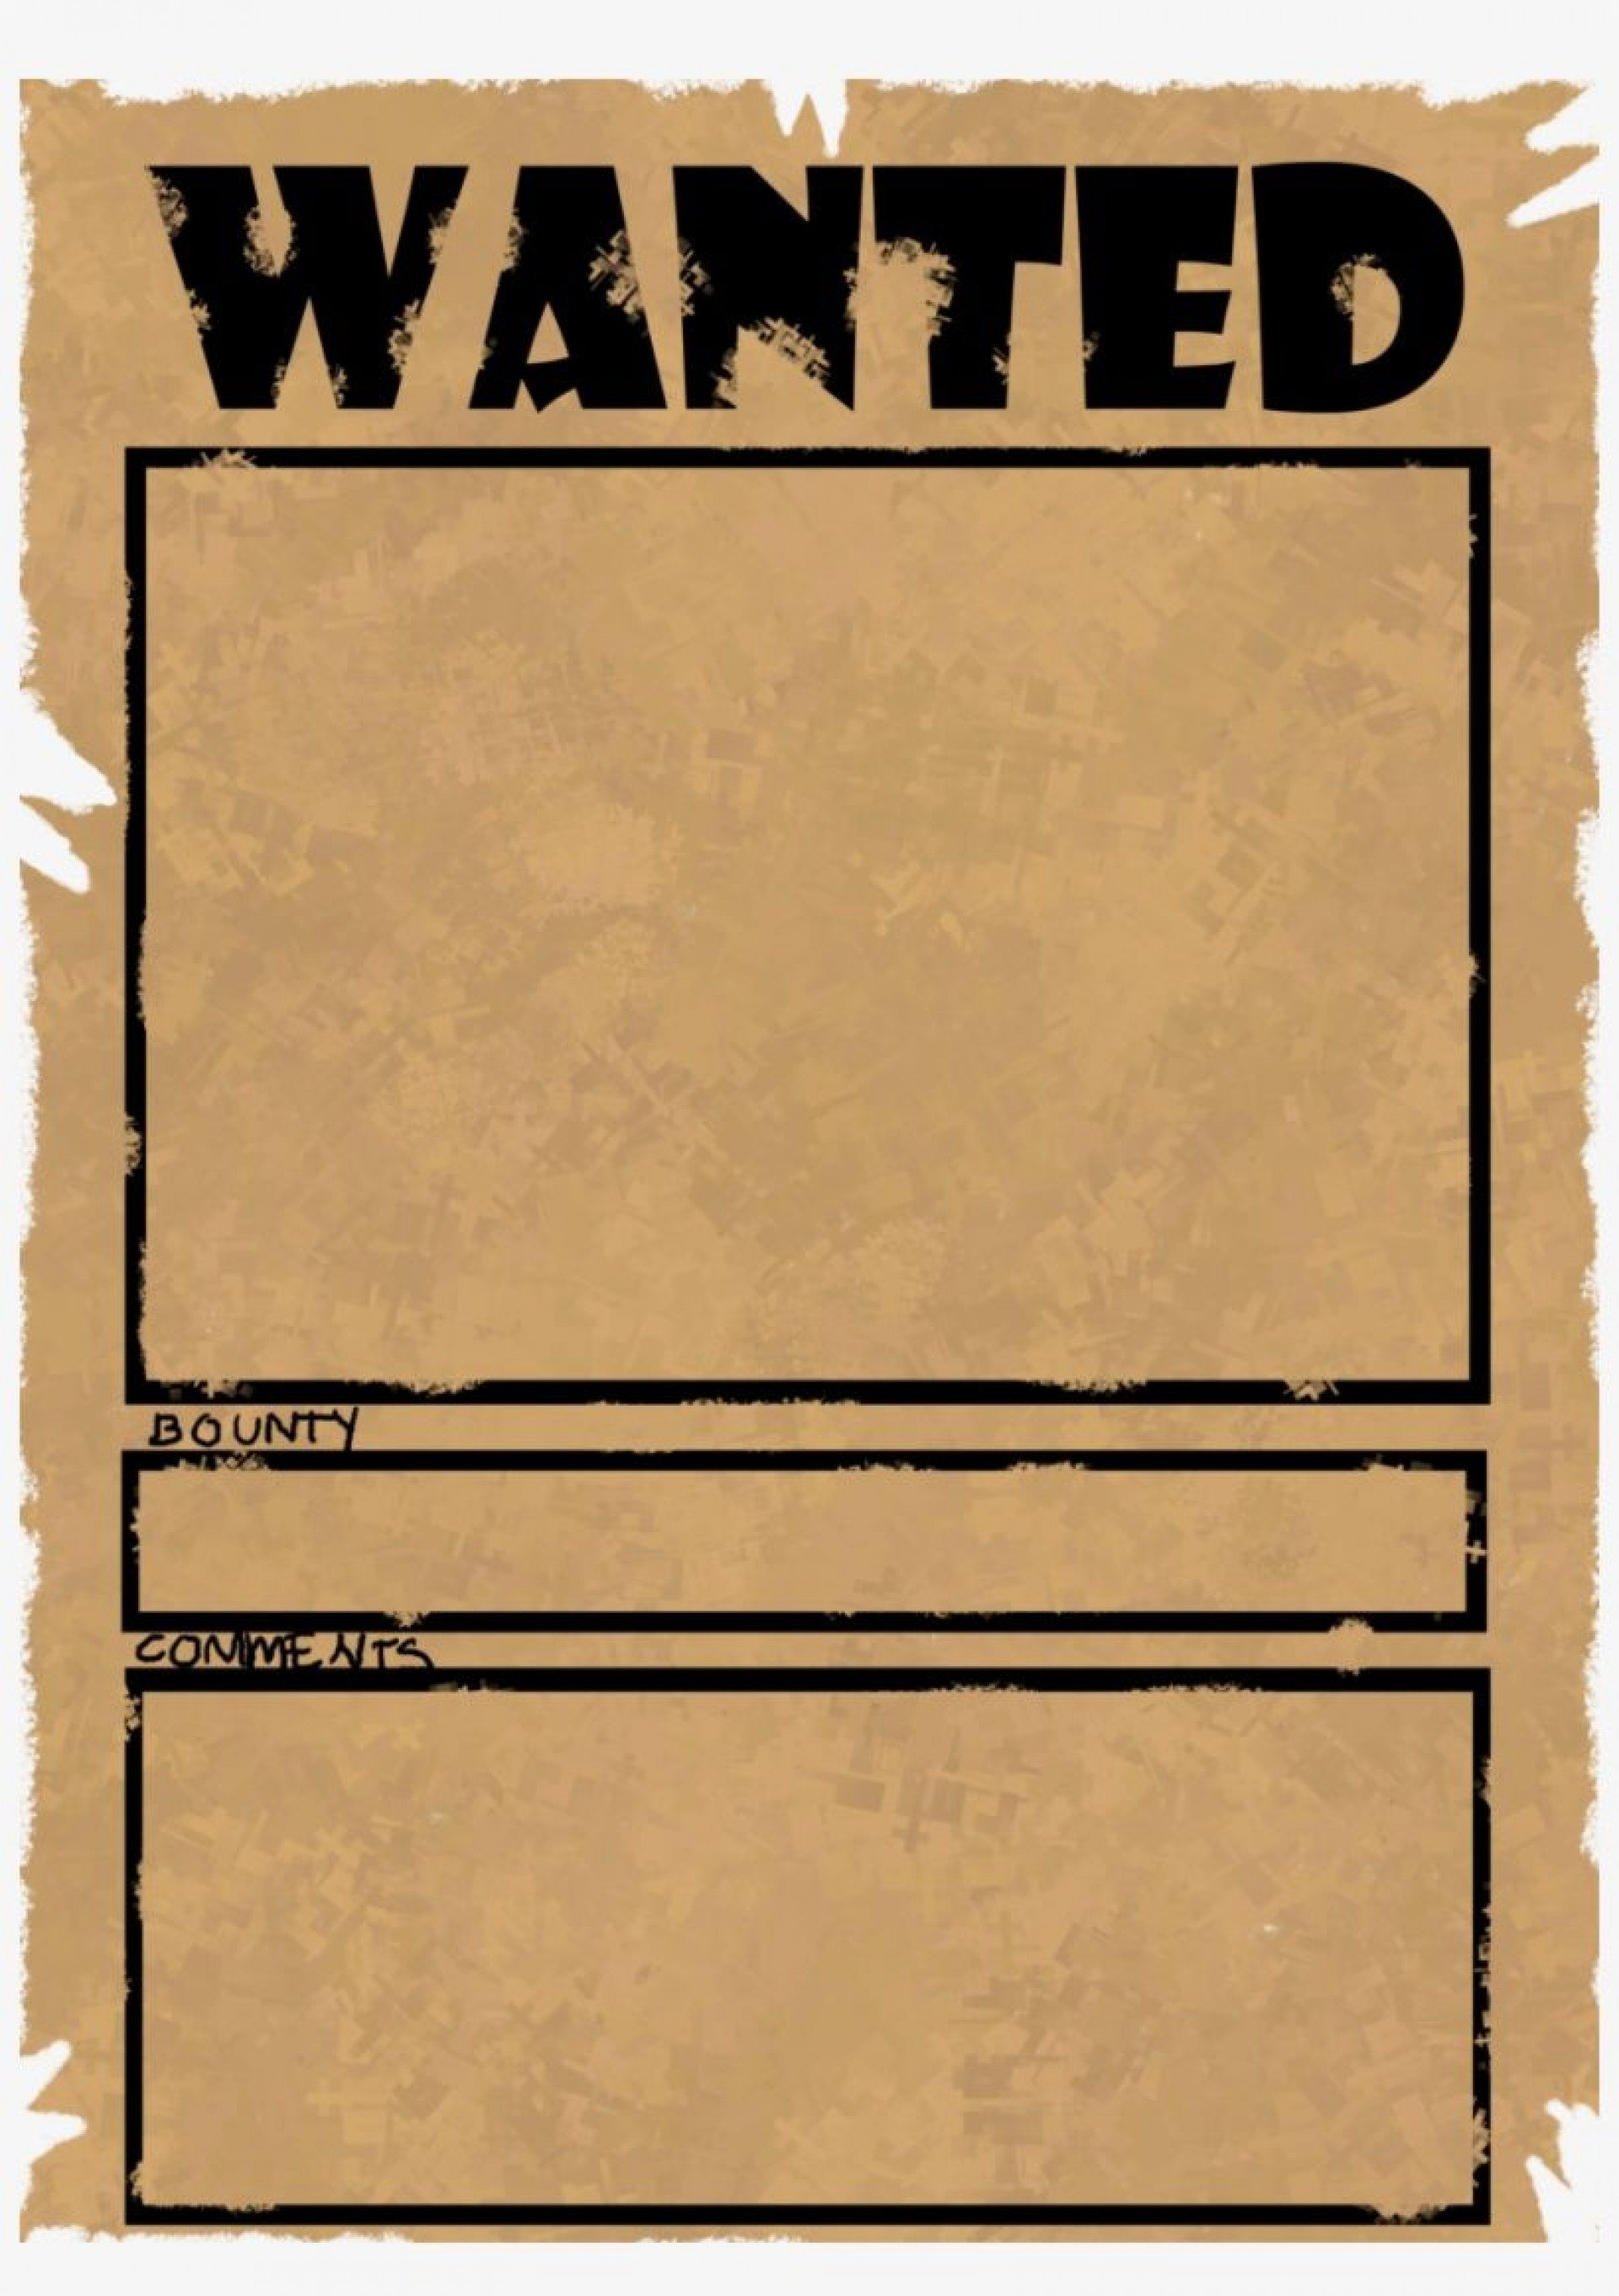 002 Imposing Wanted Poster Template Microsoft Word High Resolution  Western Most1920